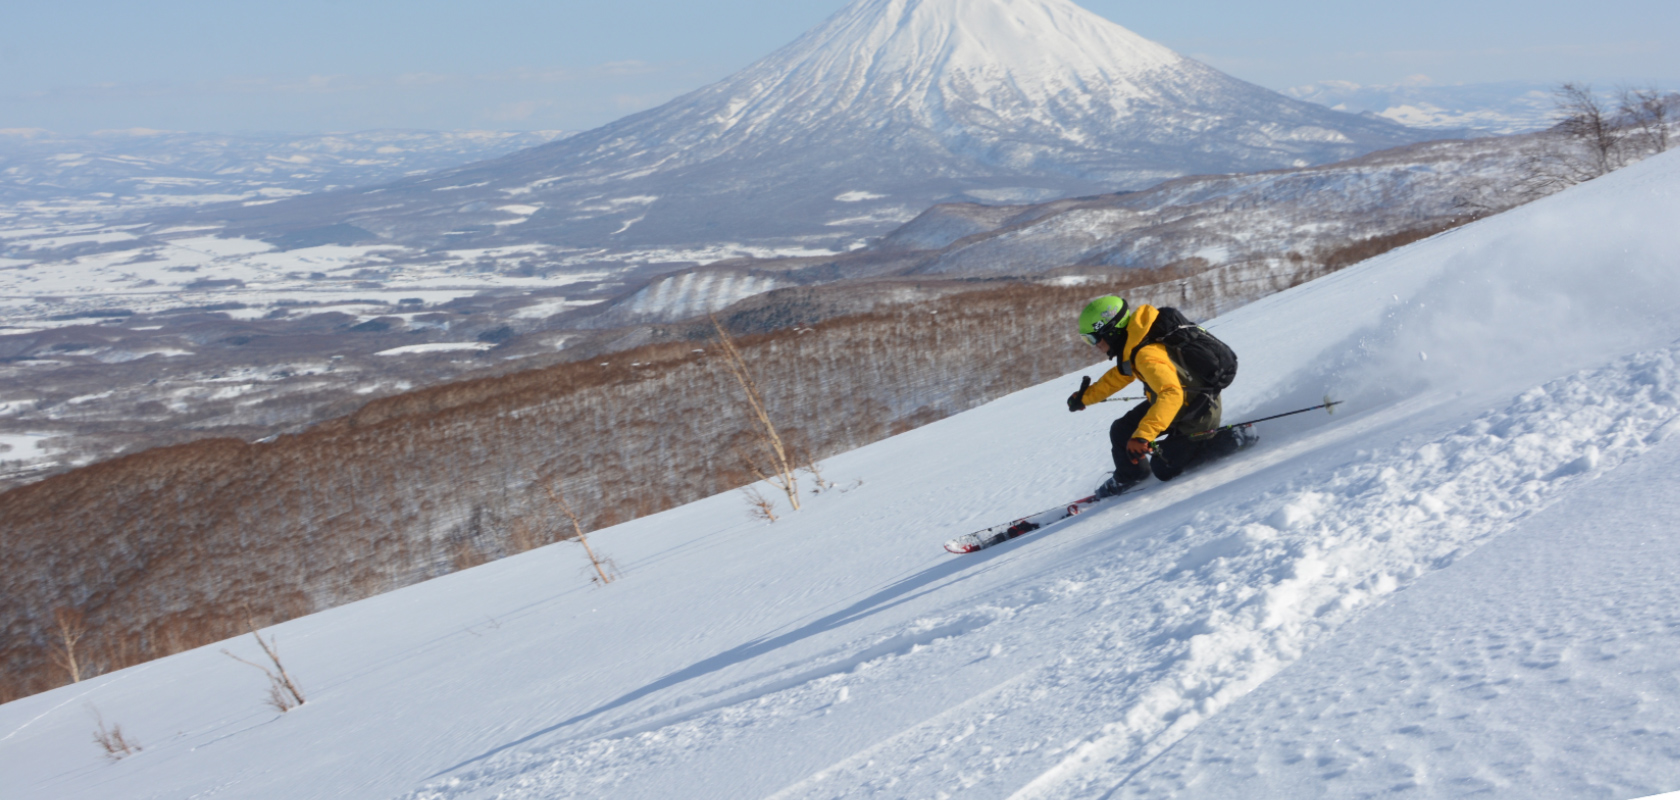 A skiier at HANAZONO Resort in Niseko, Japan.